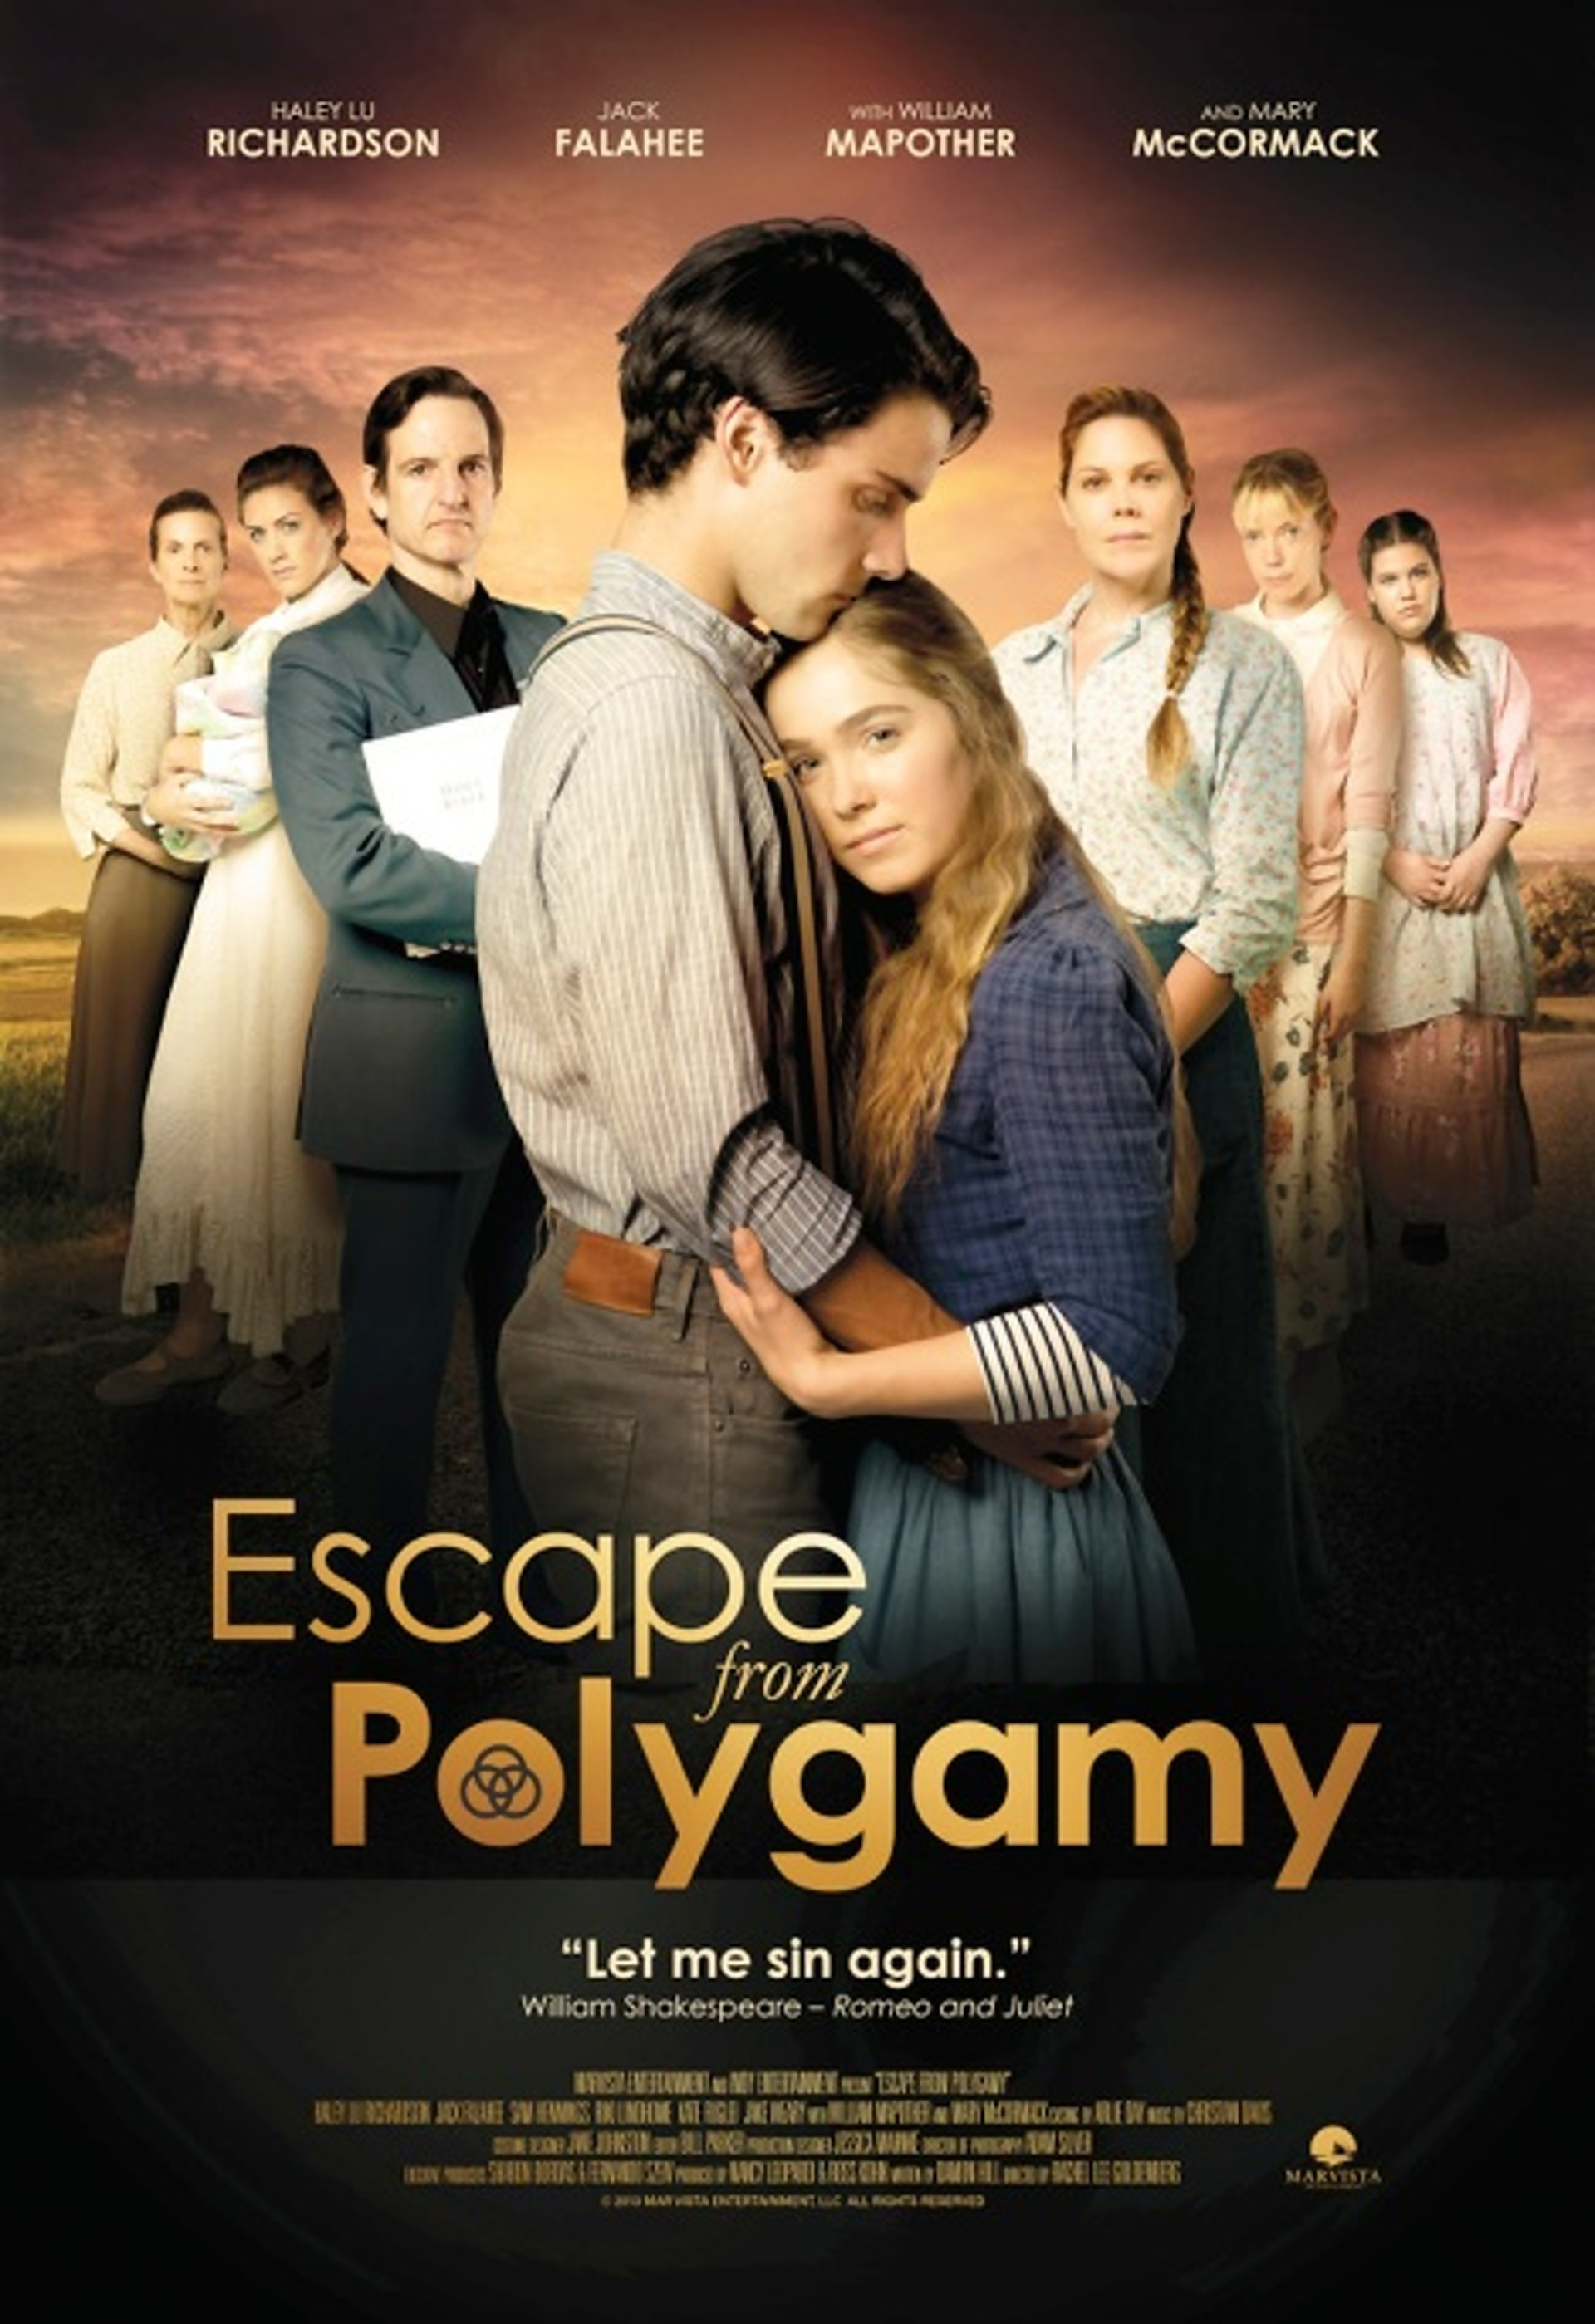 Escape from Polygamy TV Movie 2013 IMDb